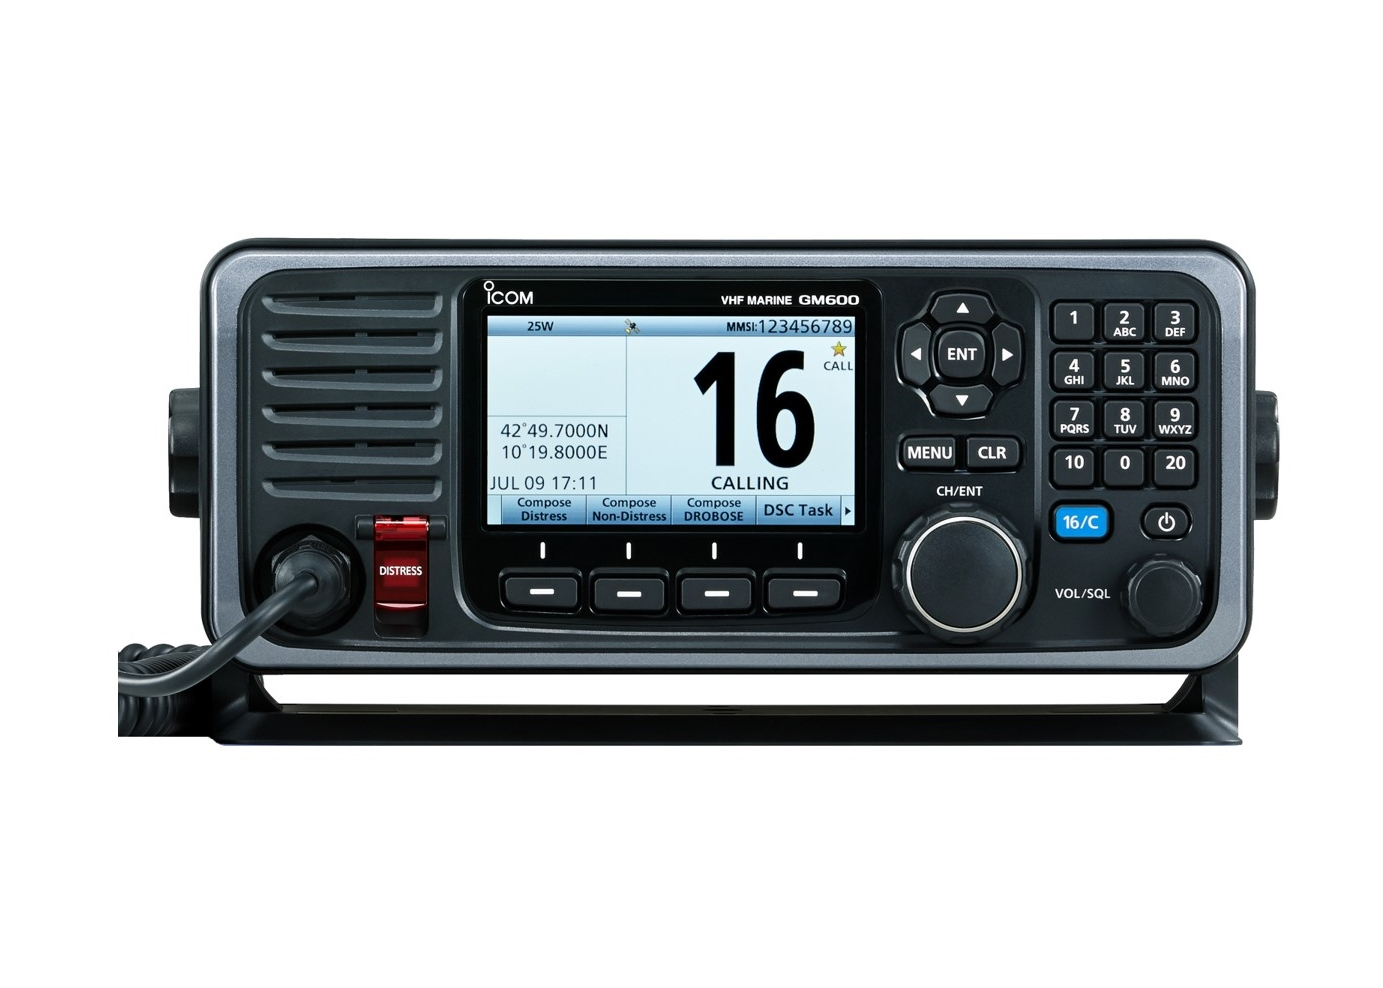 Трансивер Icom IC-GM600